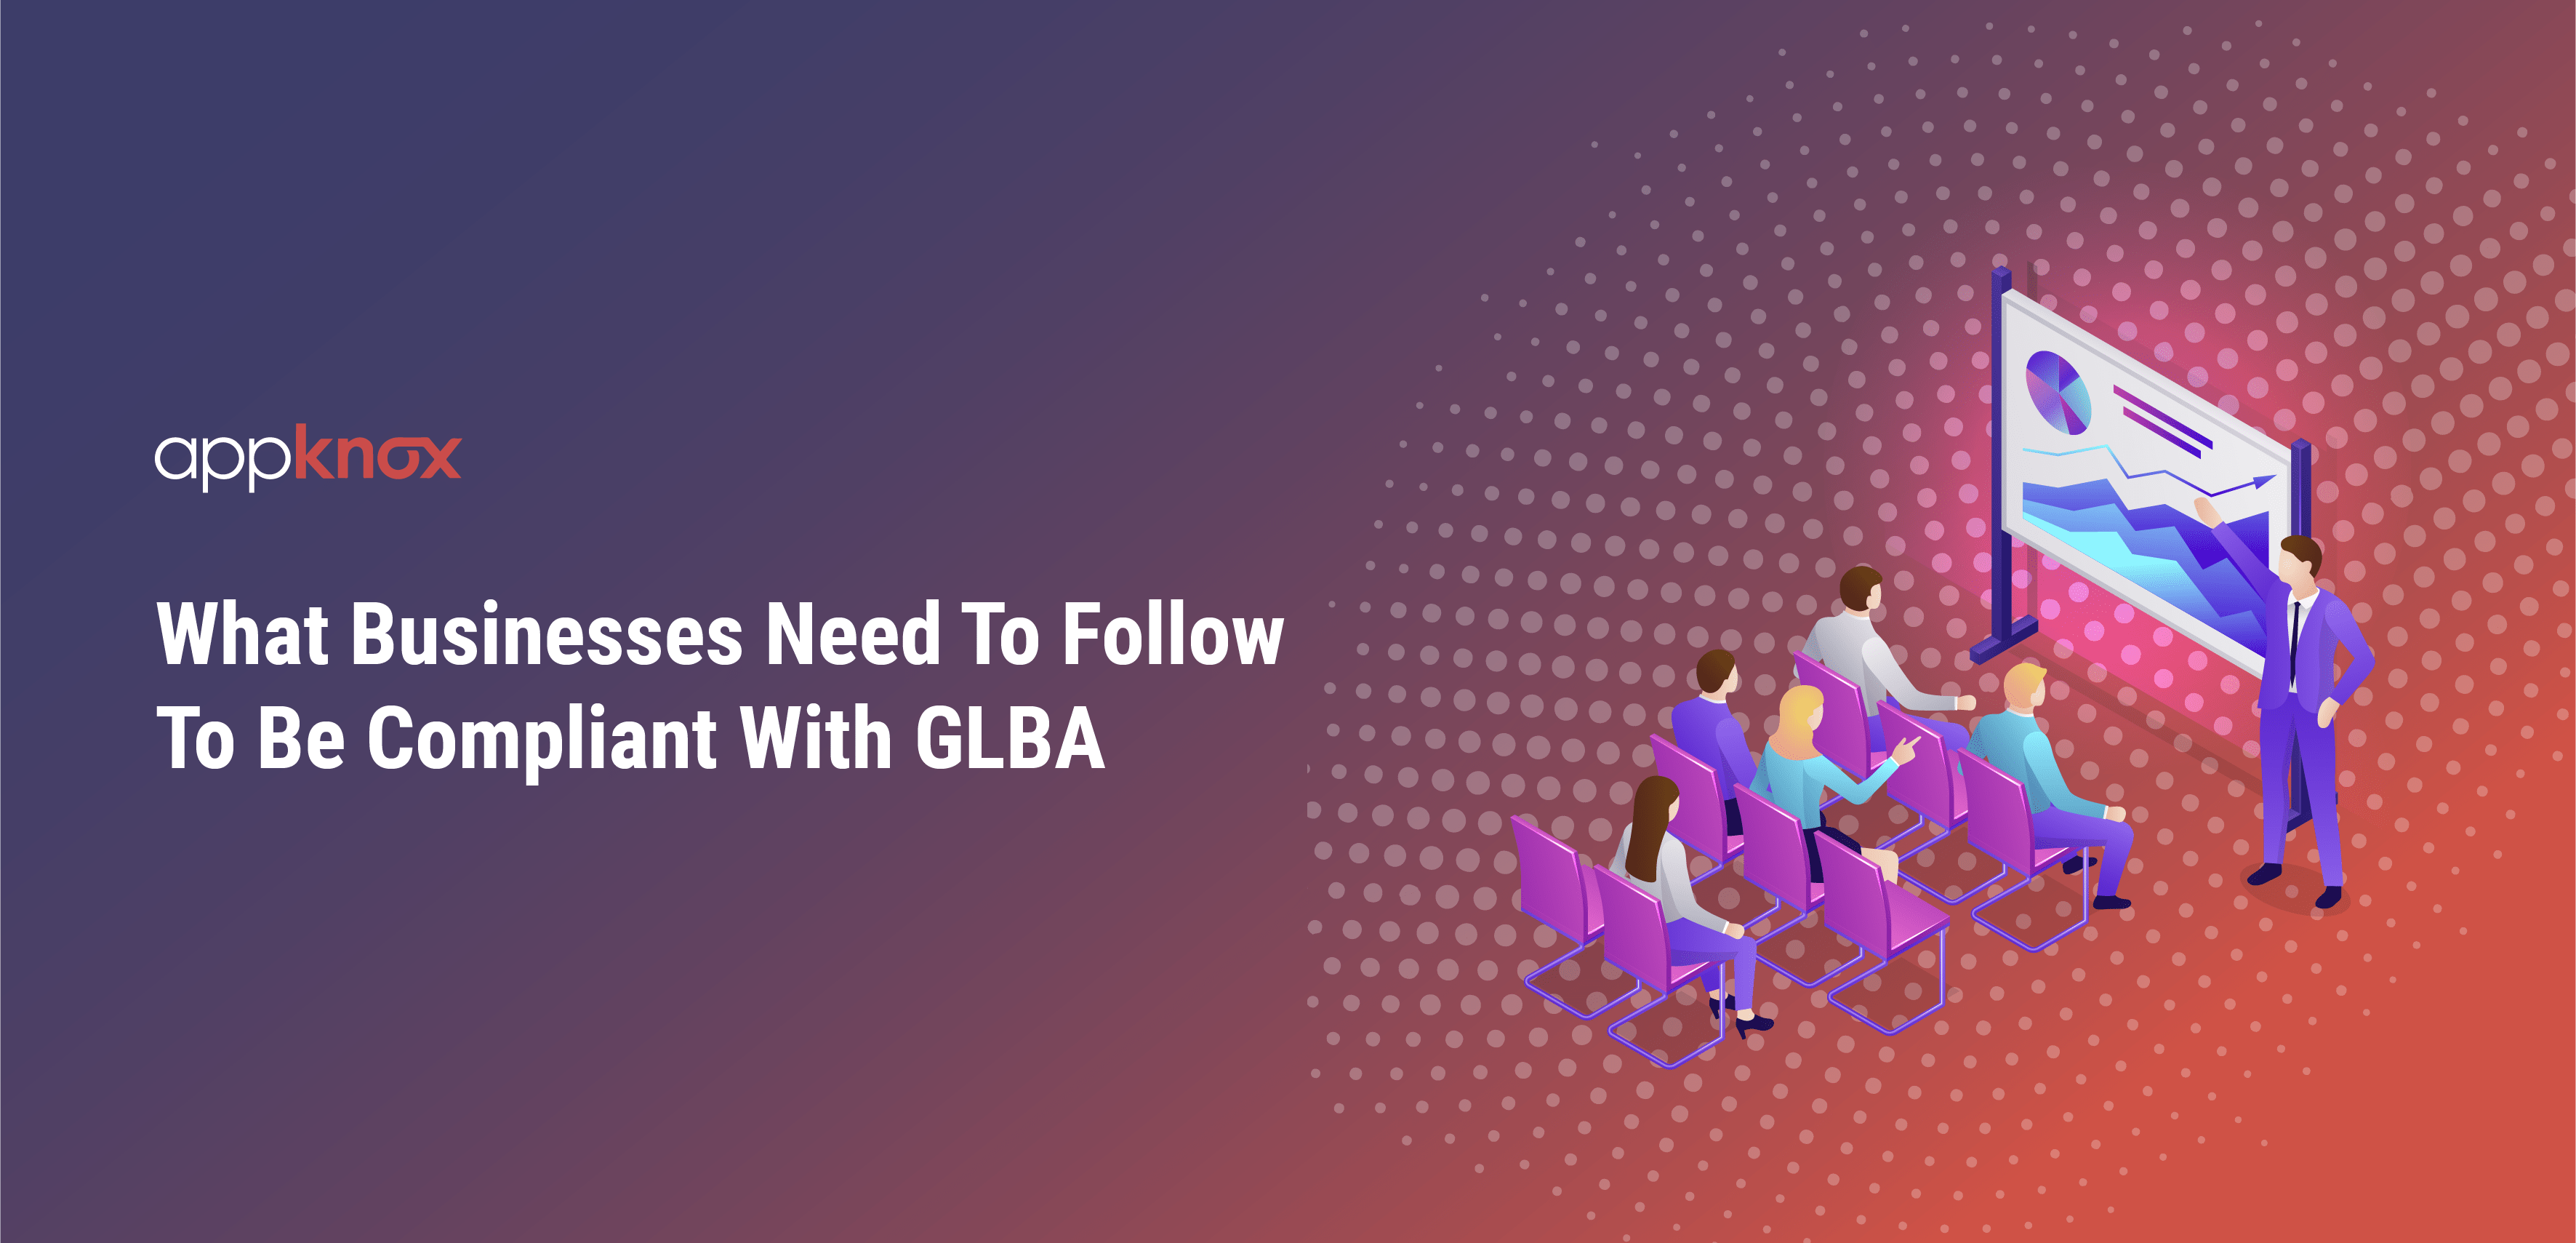 What Businesses Need To Follow To Be Compliant With GLBA